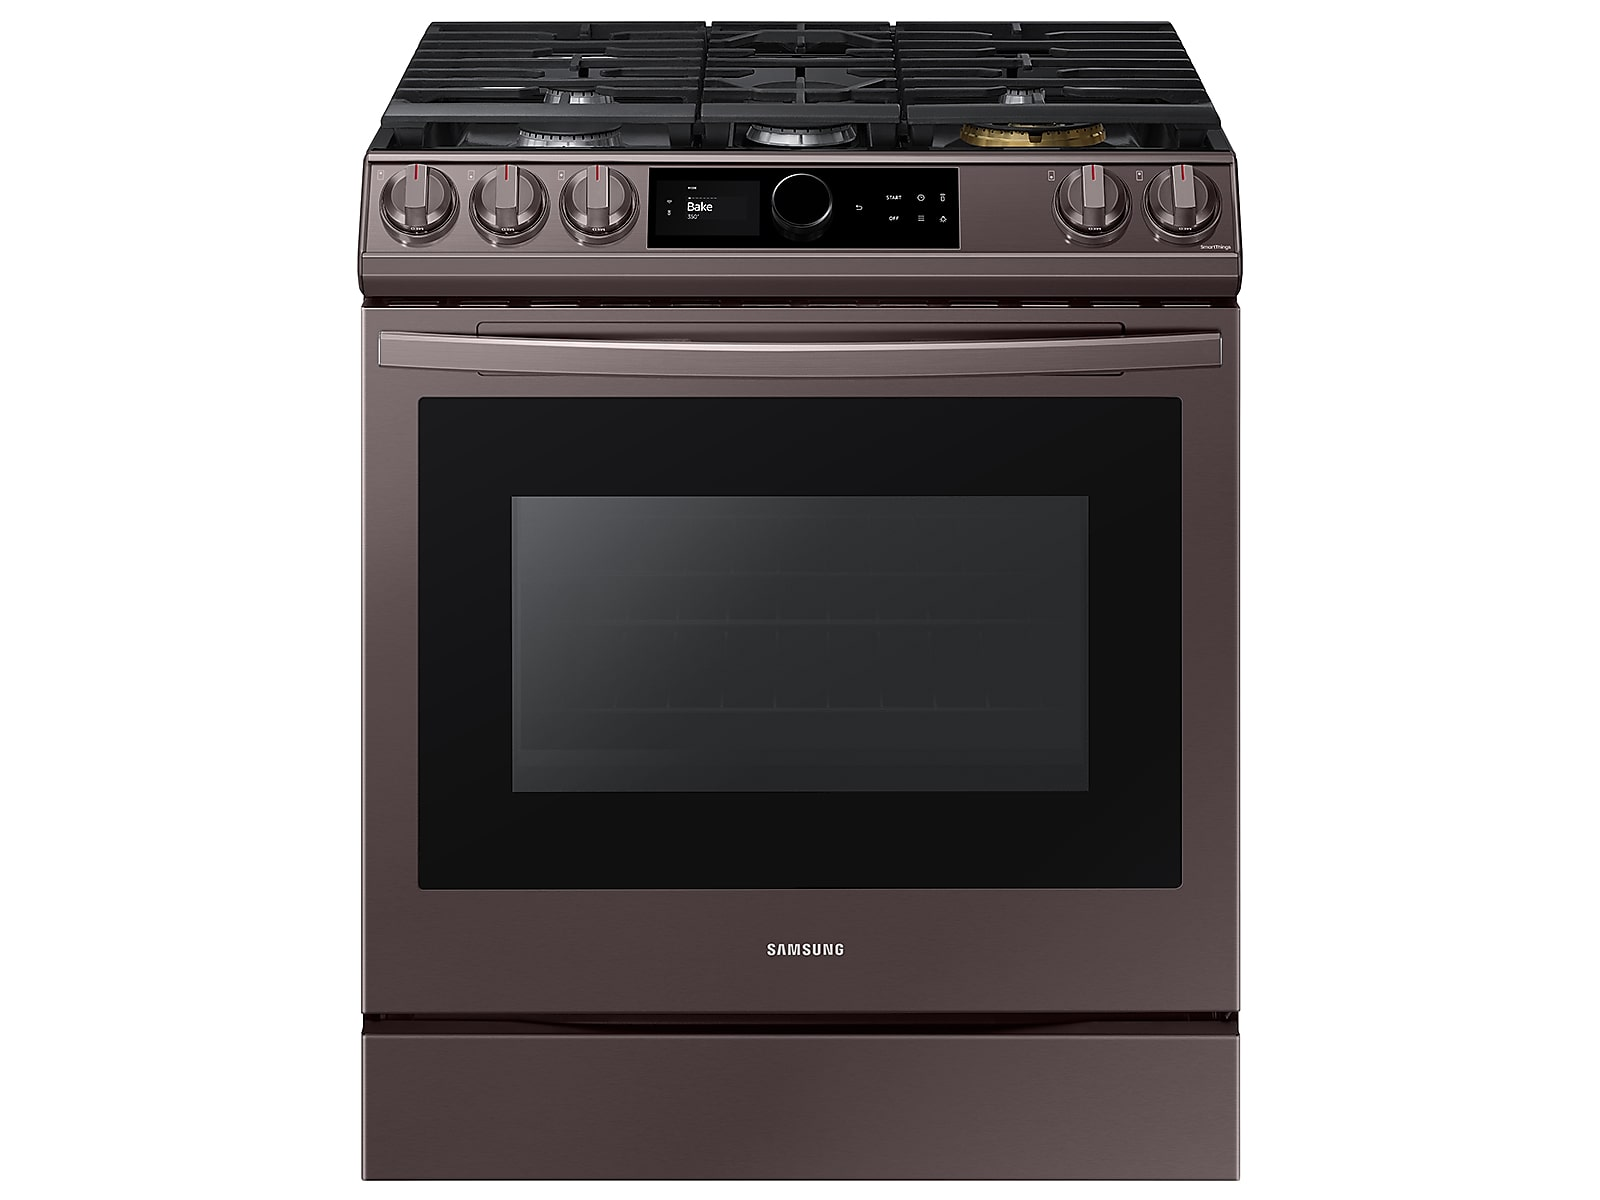 Samsung 6.0 cu ft. Smart Slide-in Gas Range with Smart Dial & Air Fry in Tuscan Stainless Steel(NX60T8711ST/AA)